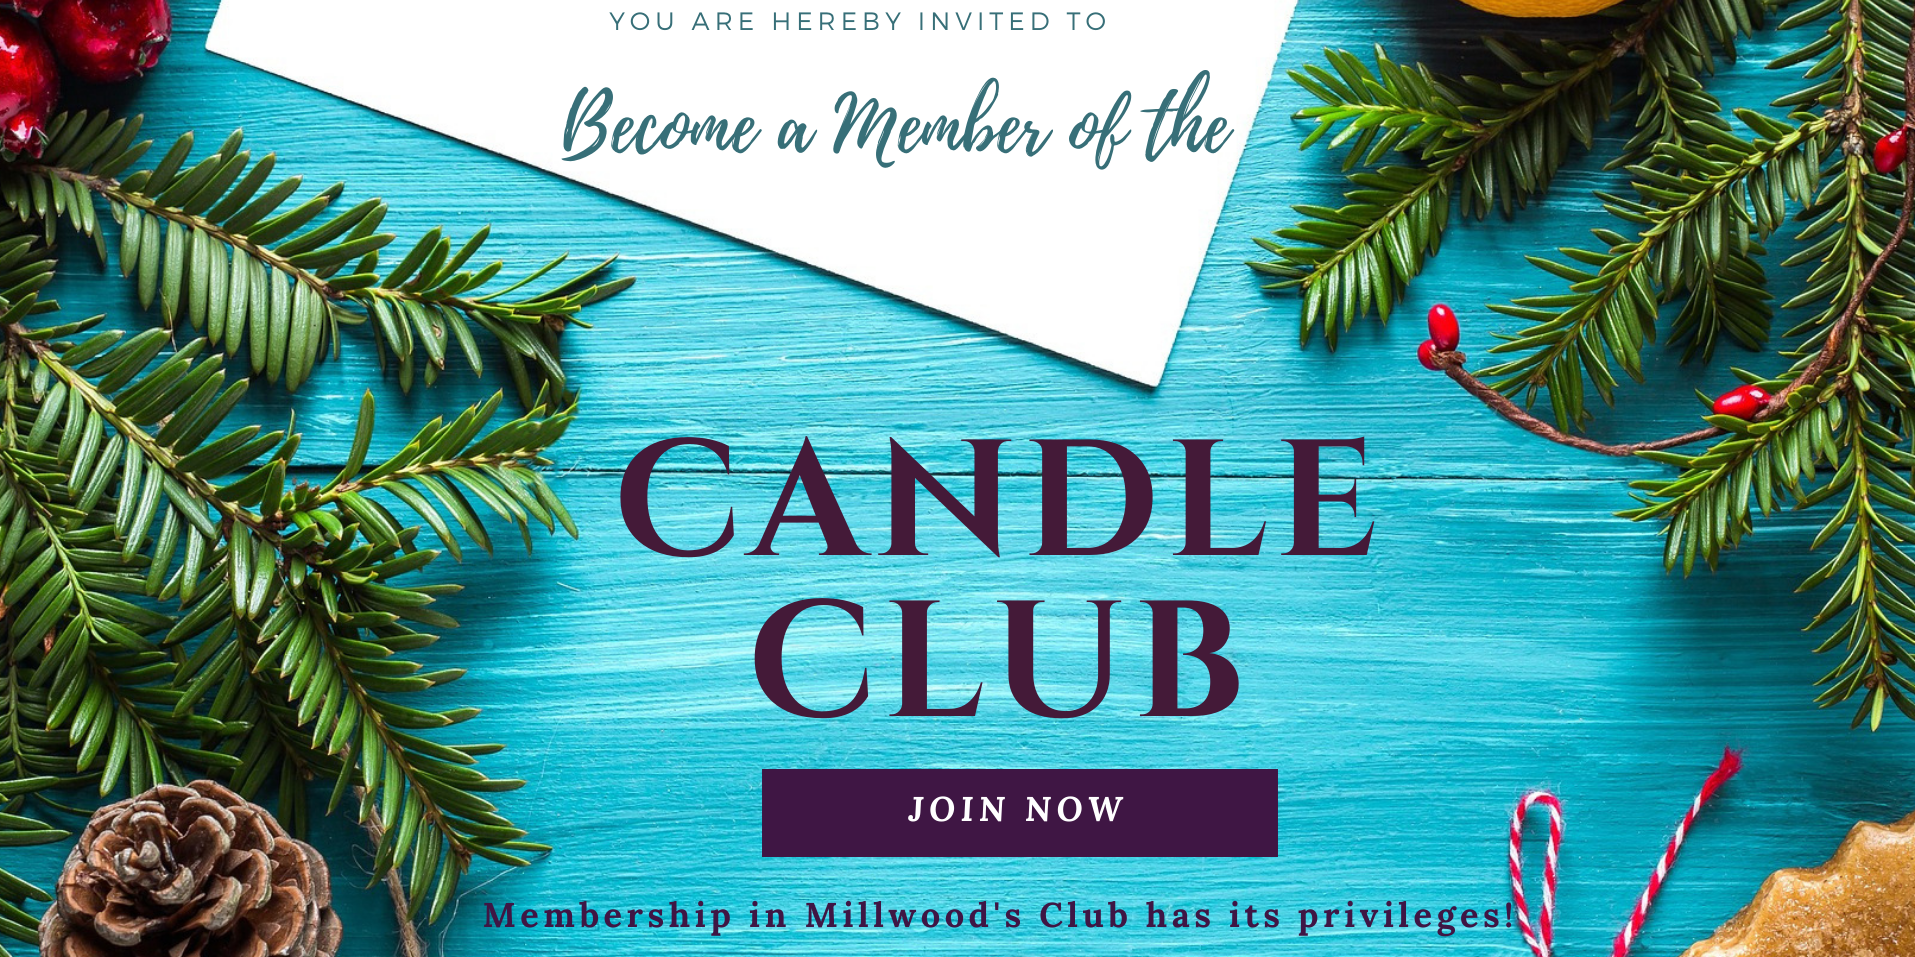 Candle Club Rewards